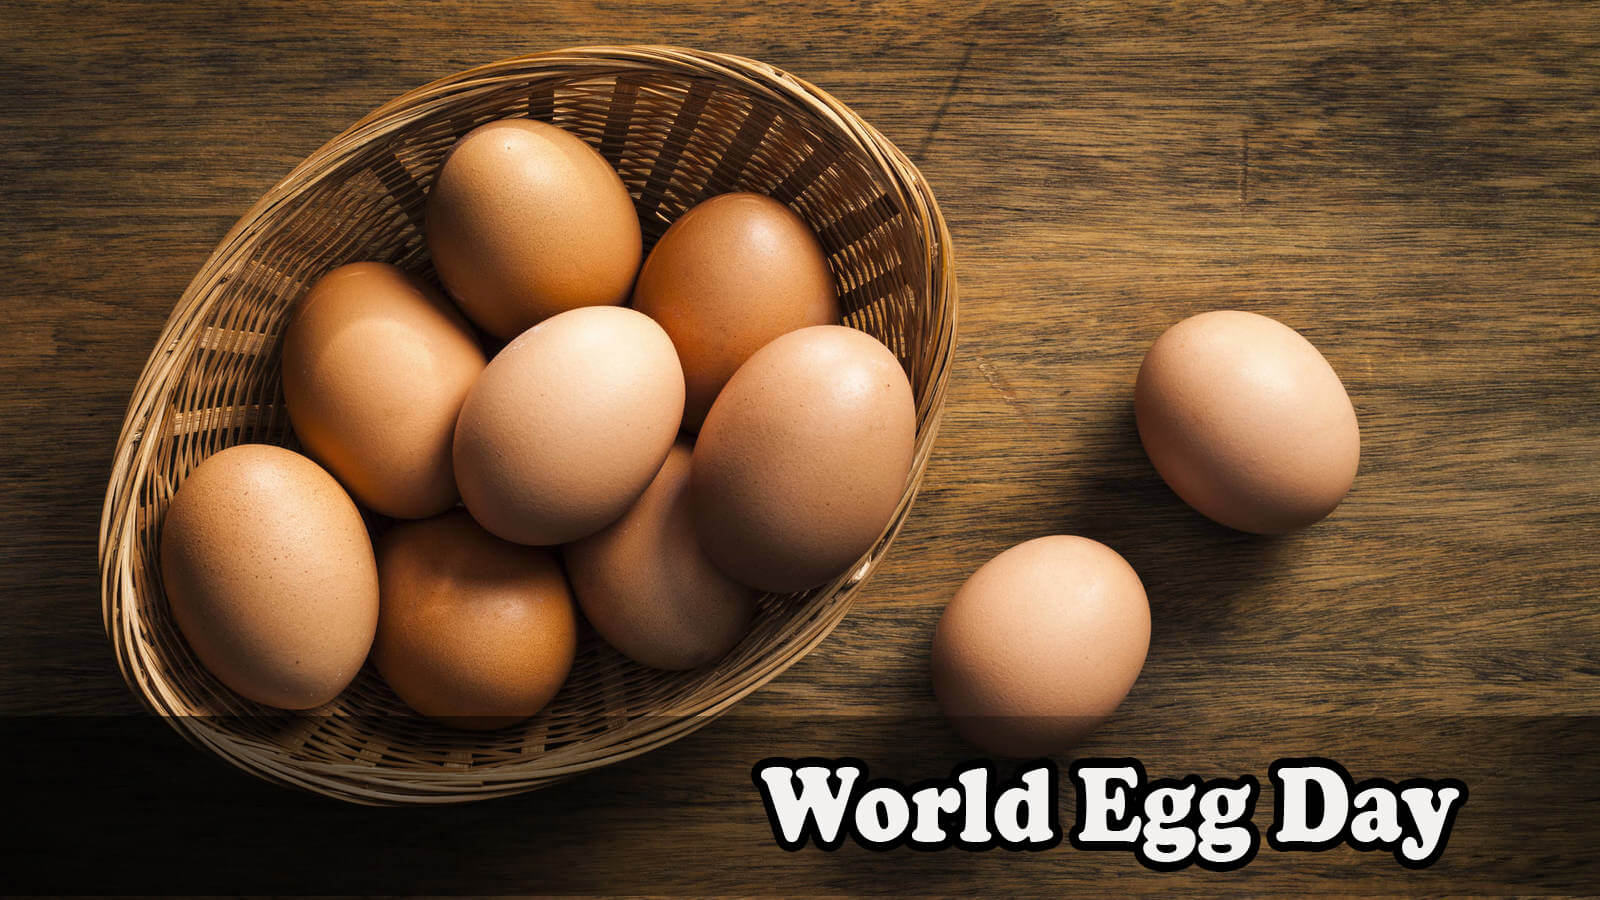 world egg day brown eggs in basket on wooden table hd wallpaper